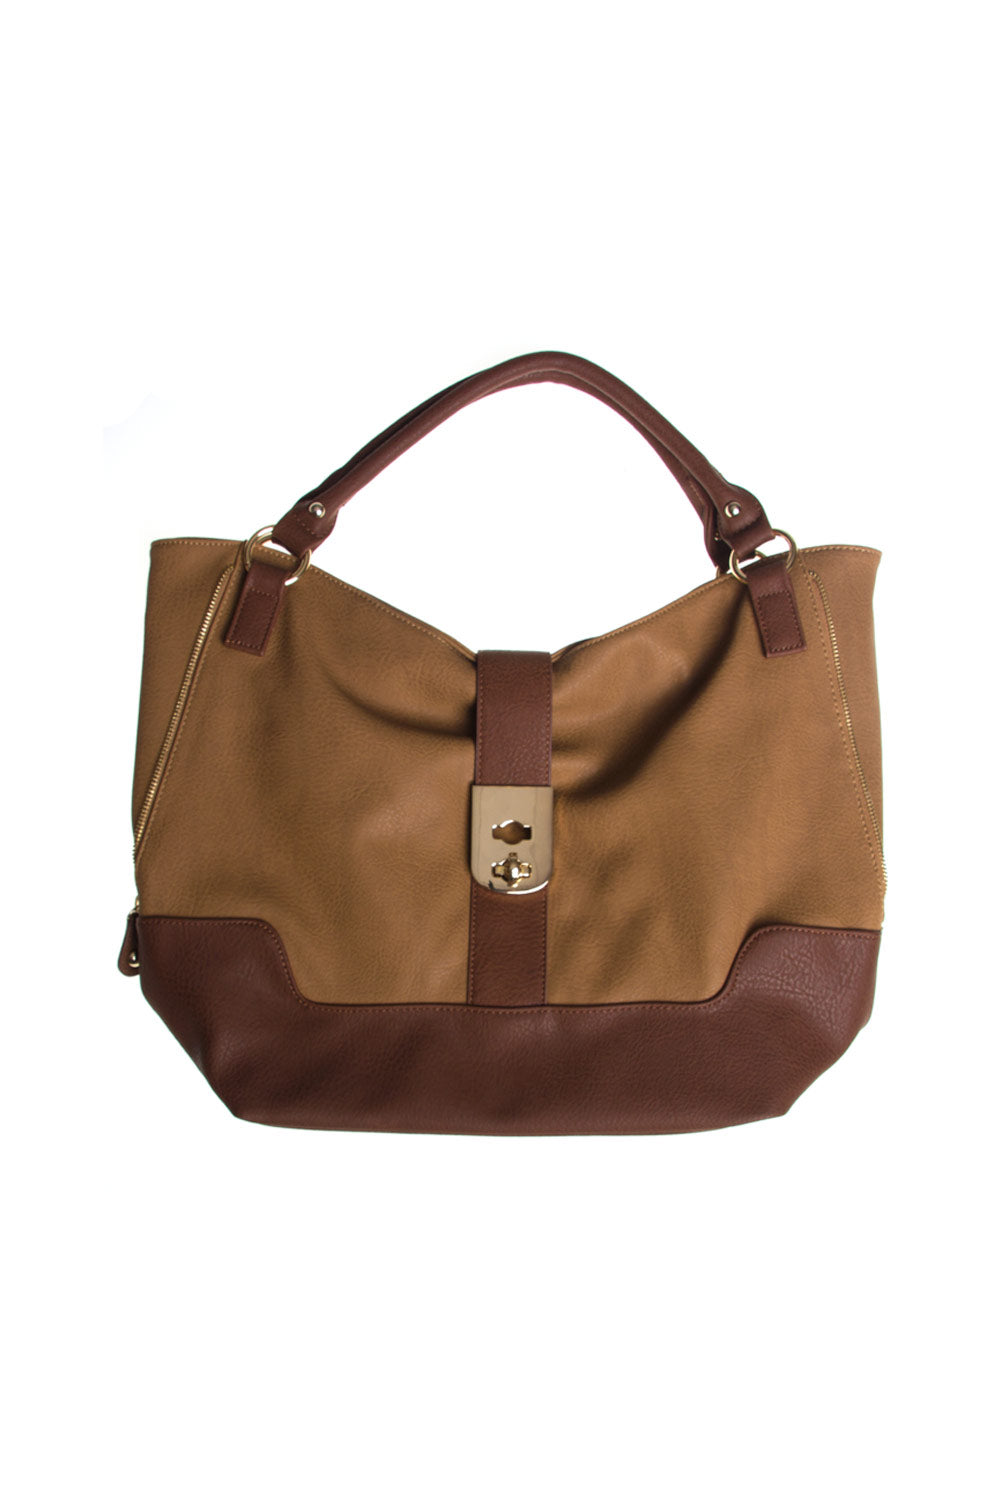 Type 3 Heart's Desire Handbag